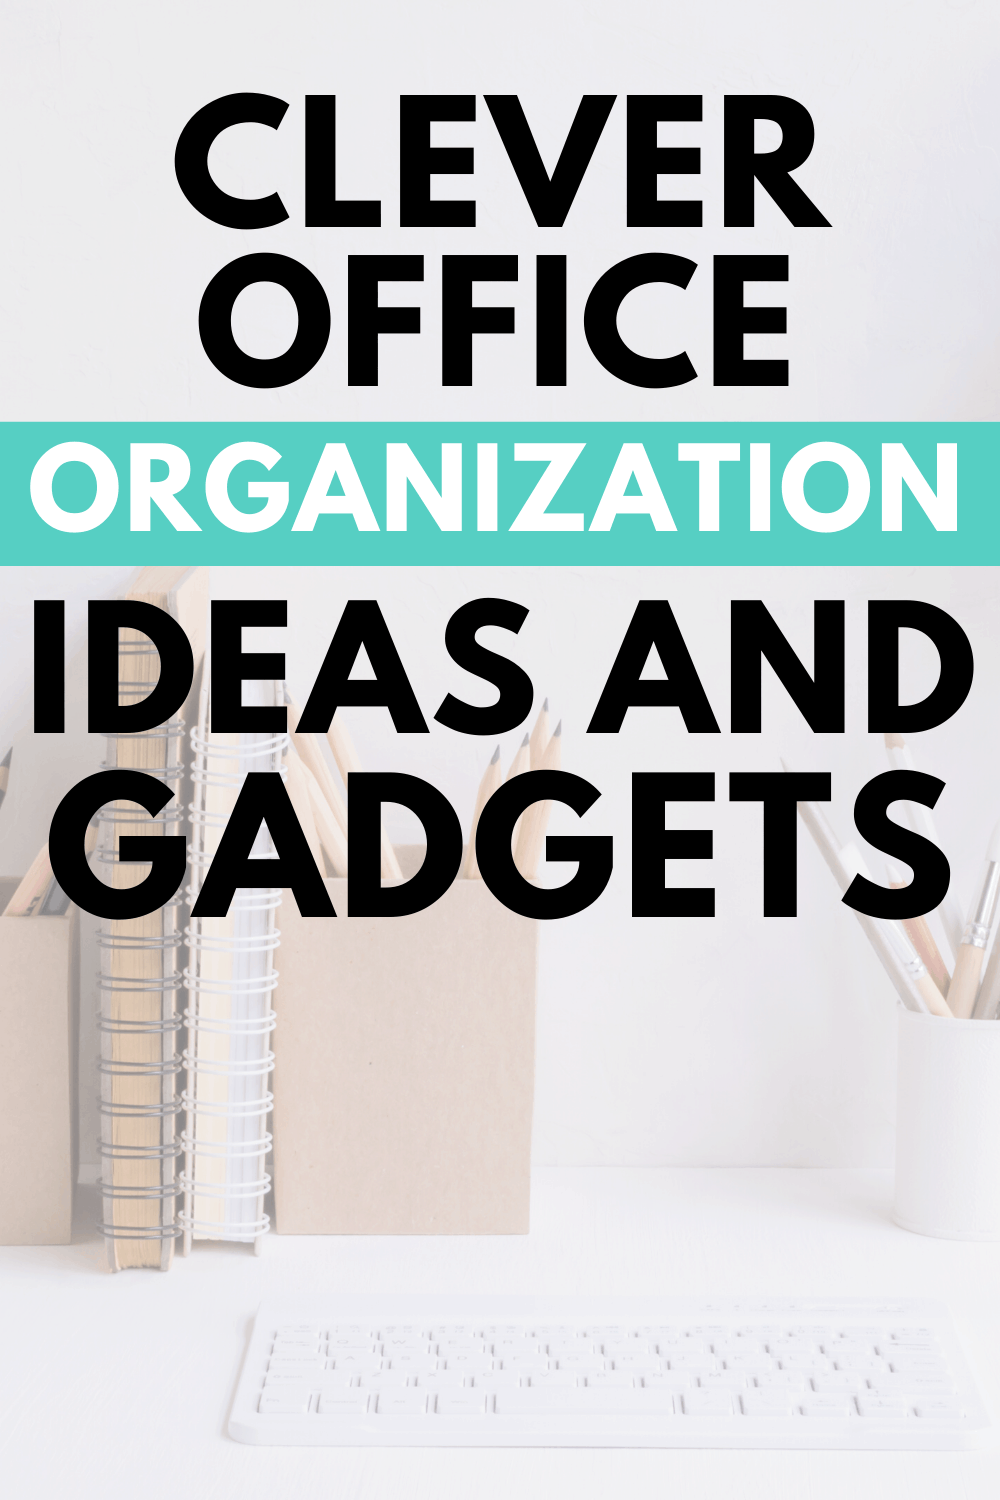 Finding and coming up with ideas to keep your home office organized can be challenging. Here are Office Organization Ideas and Gadgets to help you! via @mystayathome